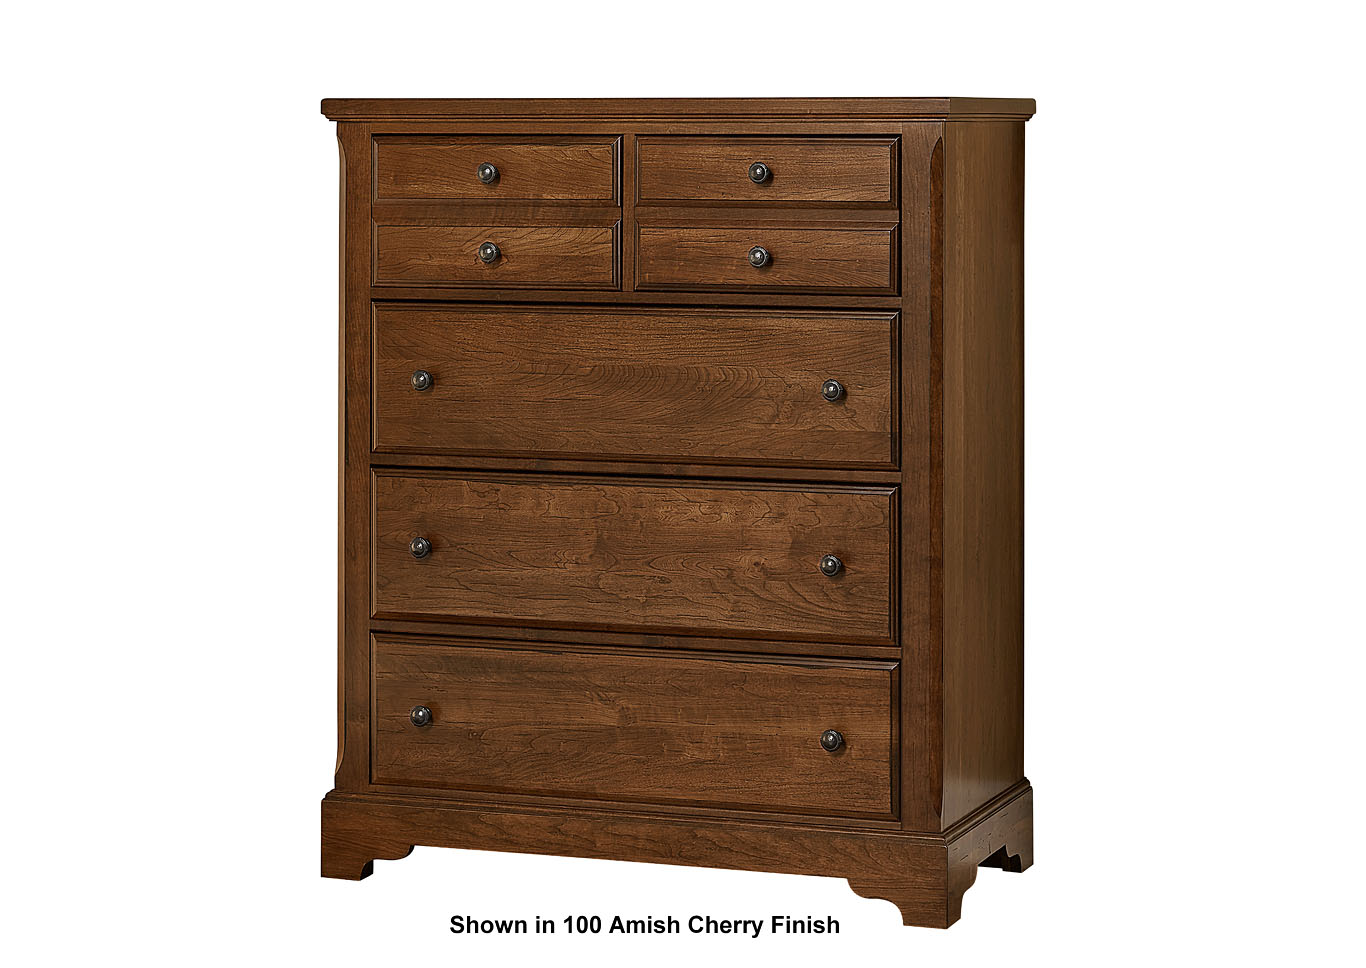 104 - Artisan Choices Dark Cherry Villa Chest - 5 Drawer,Vaughan-Bassett